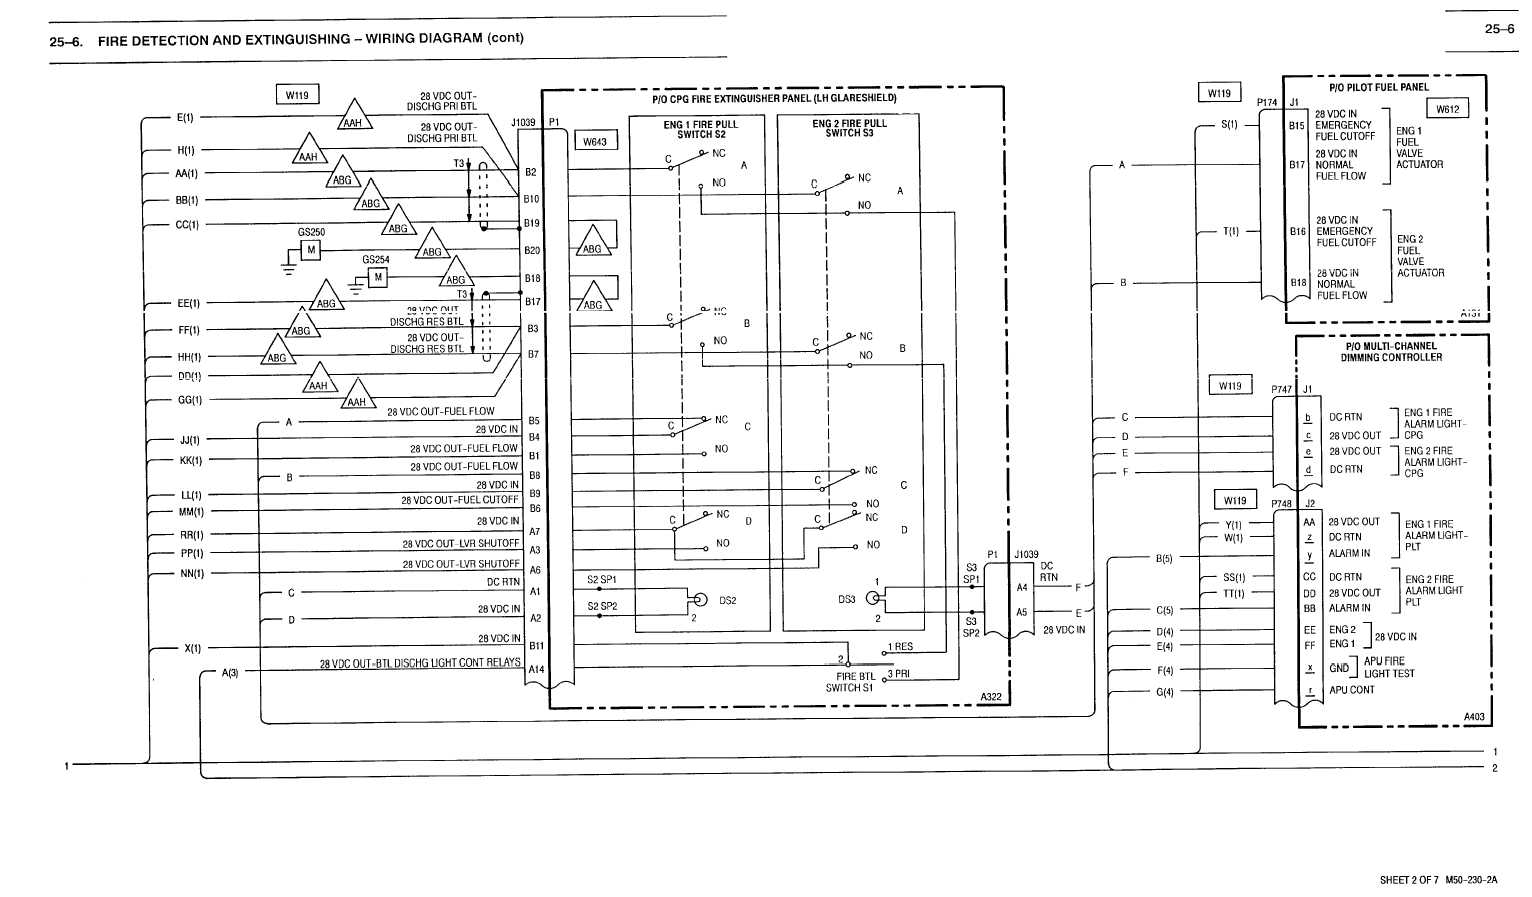 25 6 Fire Detection And Extinguishing Wiring Diagram Cont